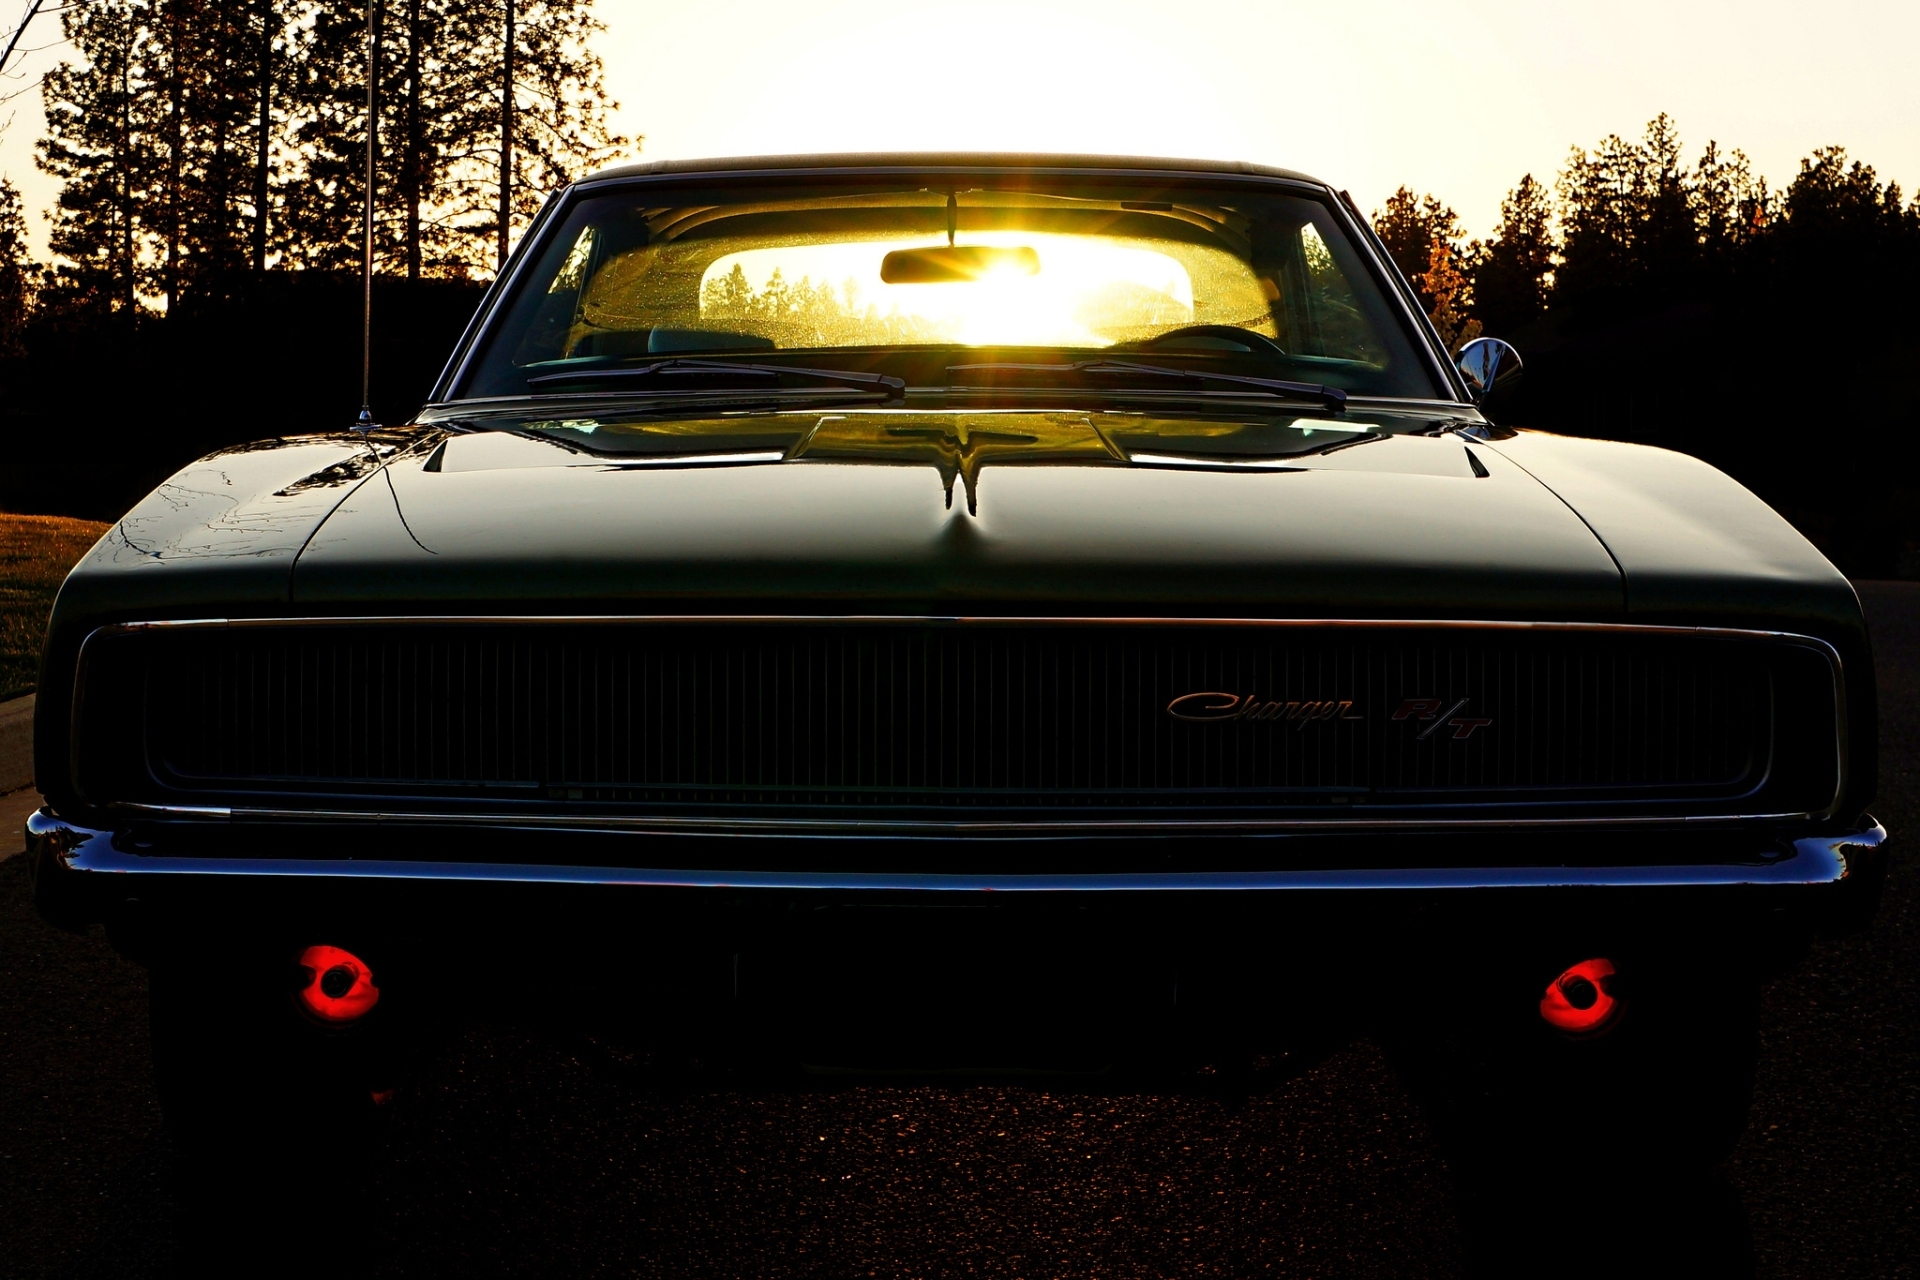 Dodge Challenger 1969 Black >> 1968 Dodge Charger Full HD Wallpaper and Background Image   1920x1280   ID:291200